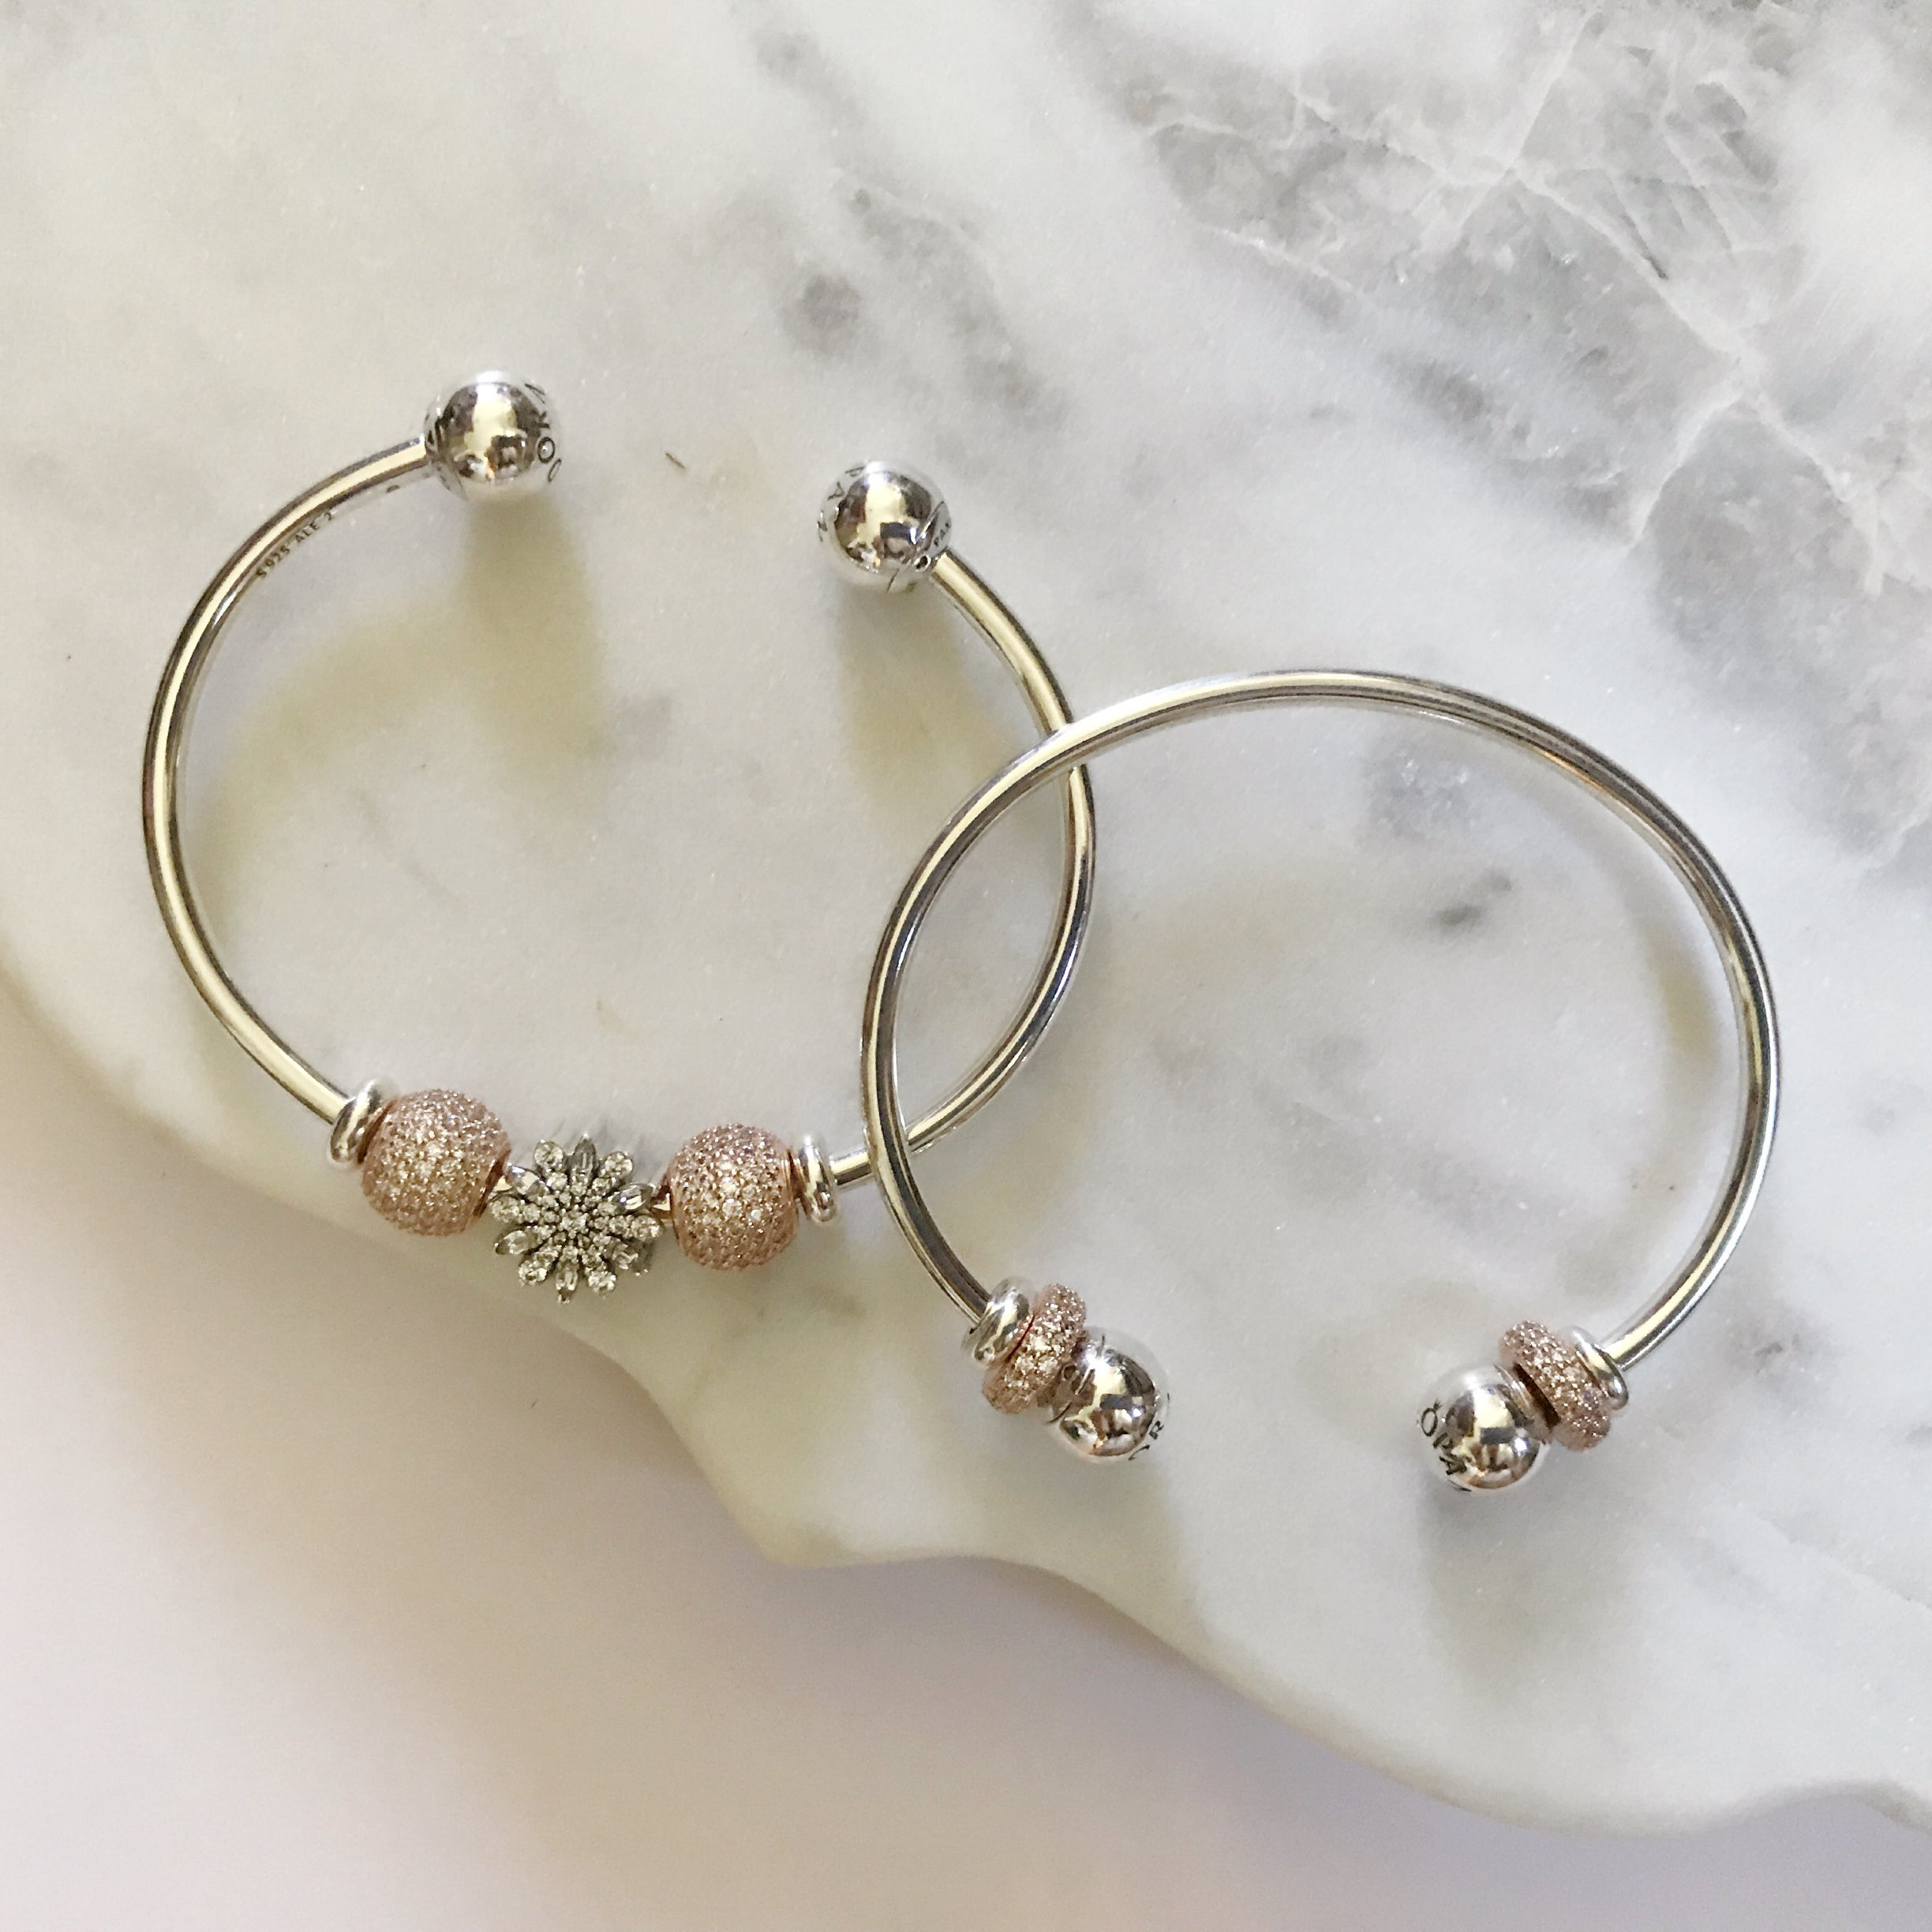 bangles new the bright clasp in of we touch silver by pandora mixing versant at index a introducing rose bangle with open arrival bethlehem love